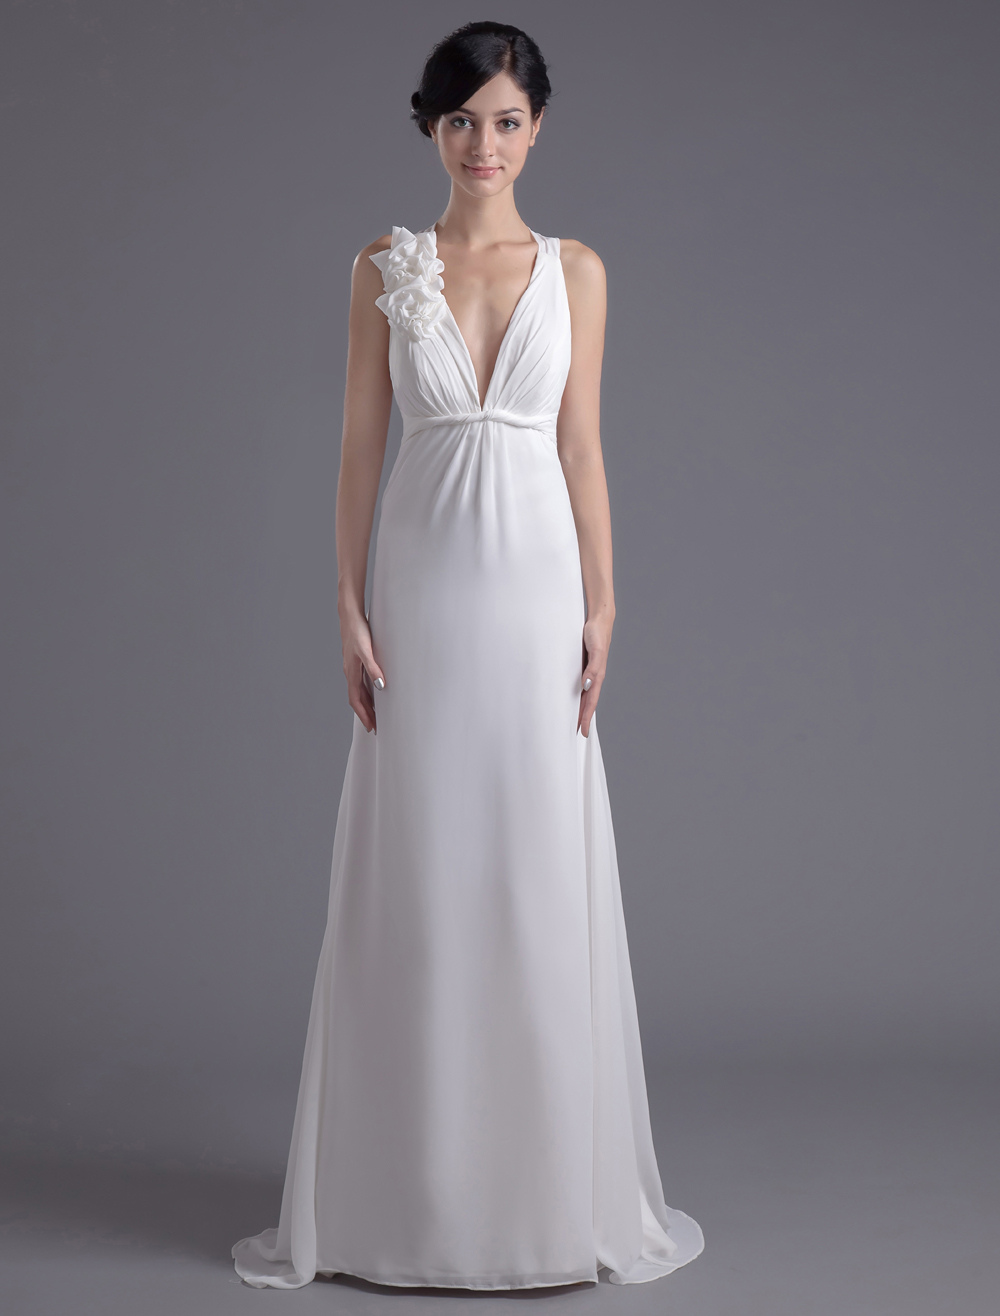 Buy Ivory Chiffon Floral V-Neck Evening Dress for $144.89 in Milanoo store